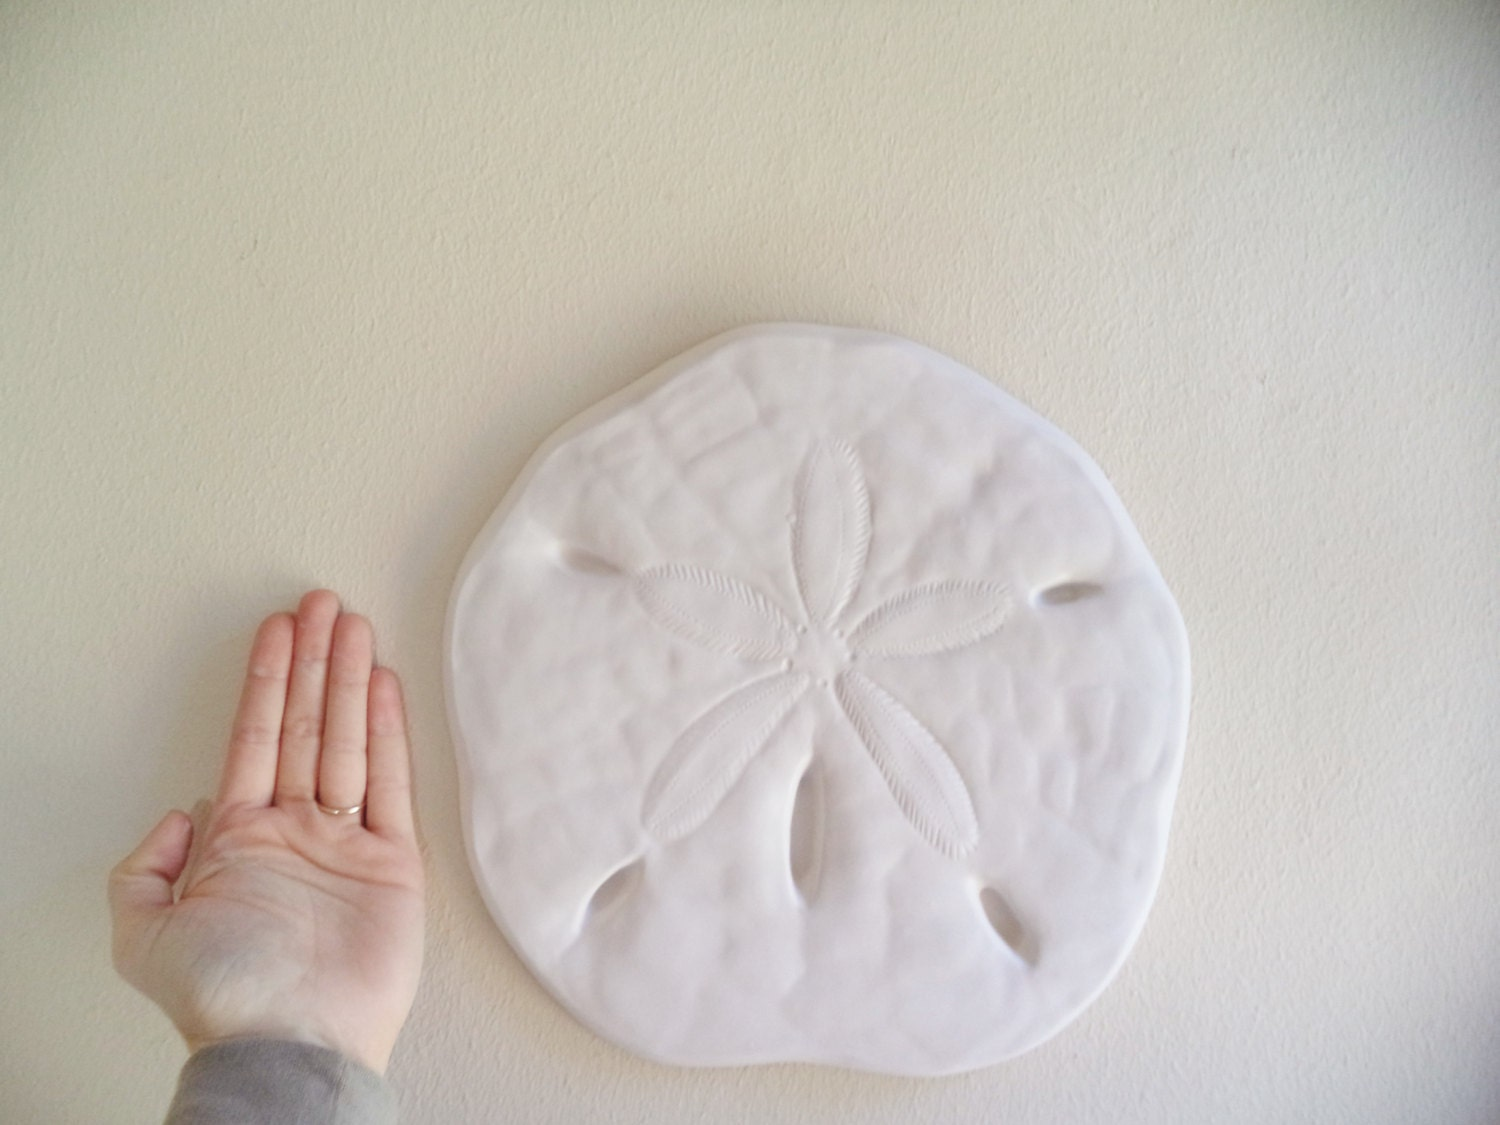 Sand Dollar Wall Hanging Sculpture Sea Shell Beach Decor